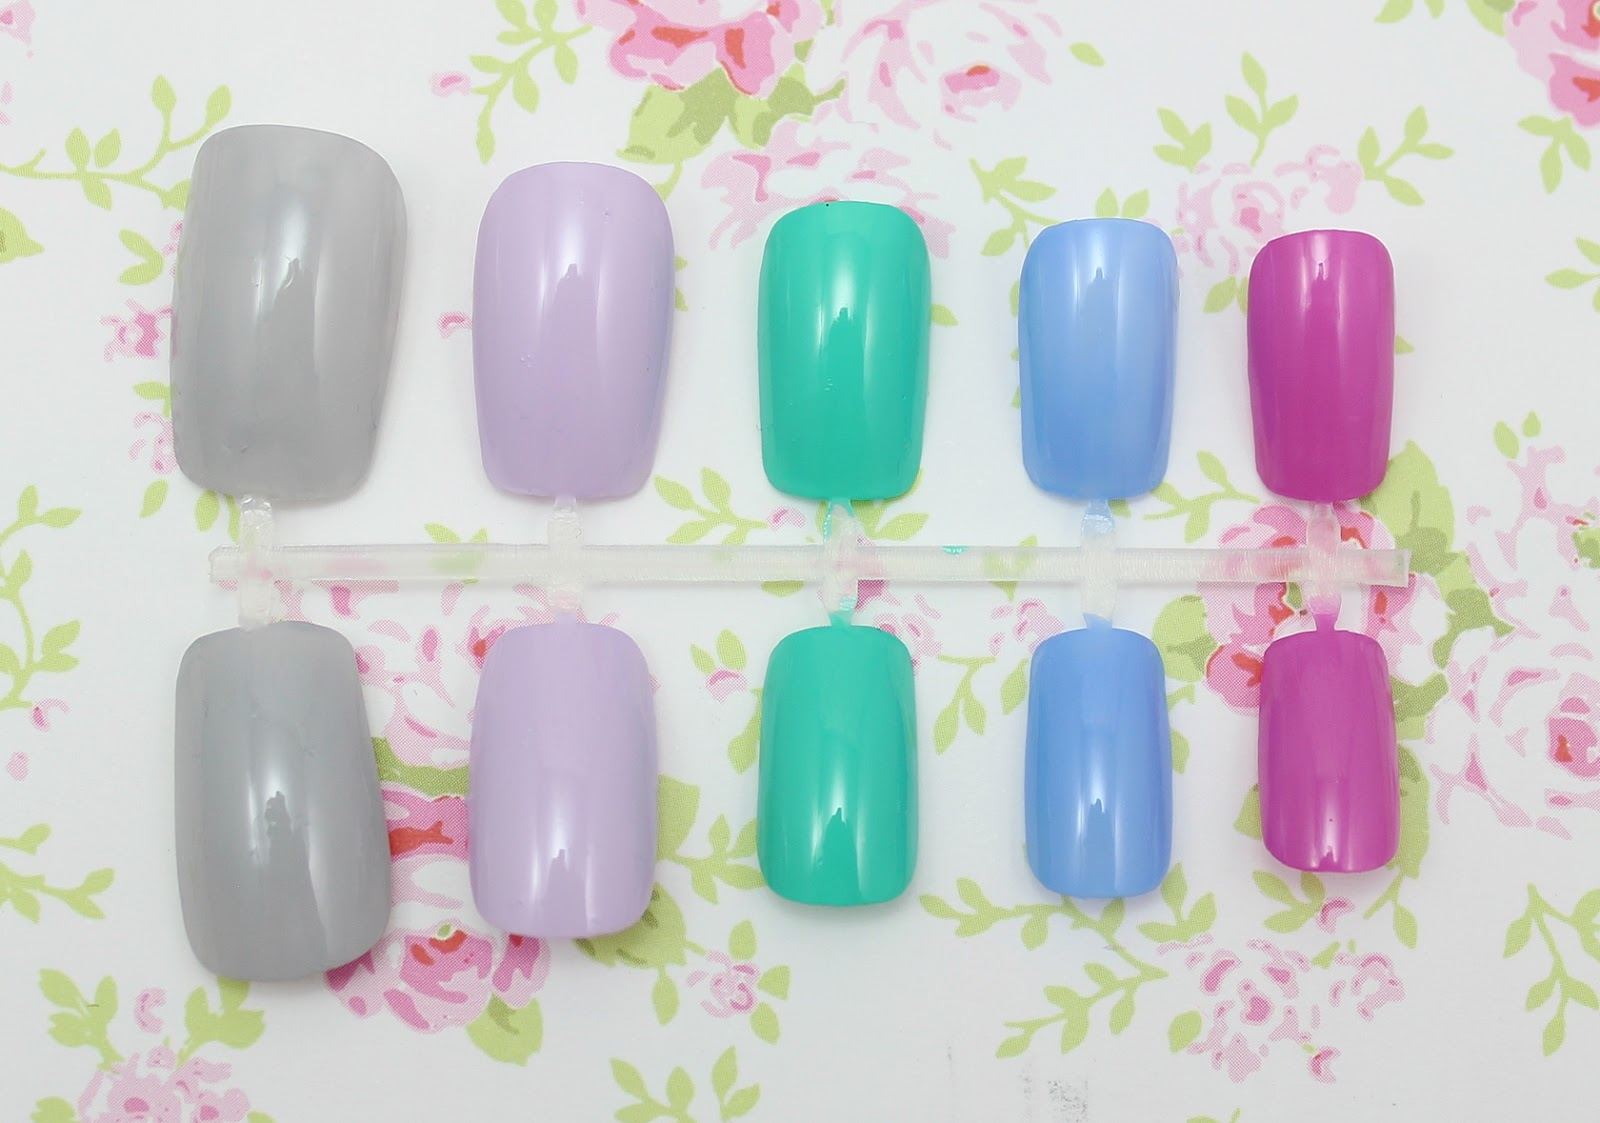 Models Own Hypergel Polishes swatches